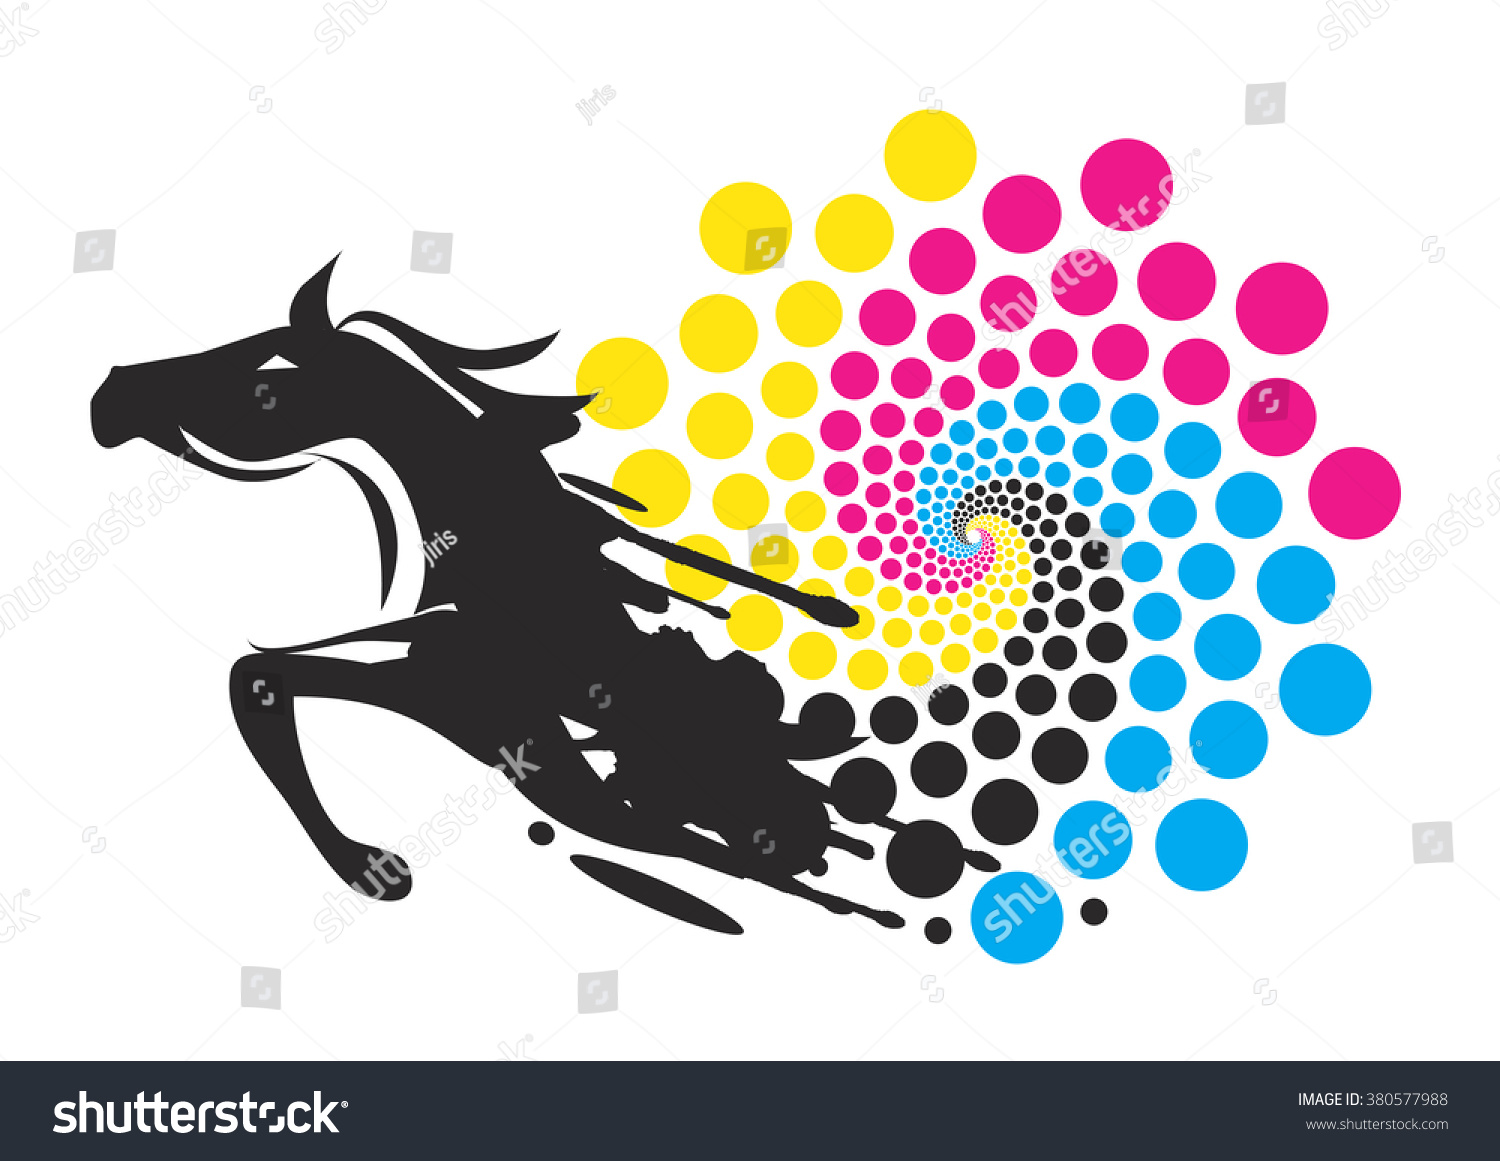 horse with print colors circle black running horse with the circle of the print colors - Horse Pictures Print Color